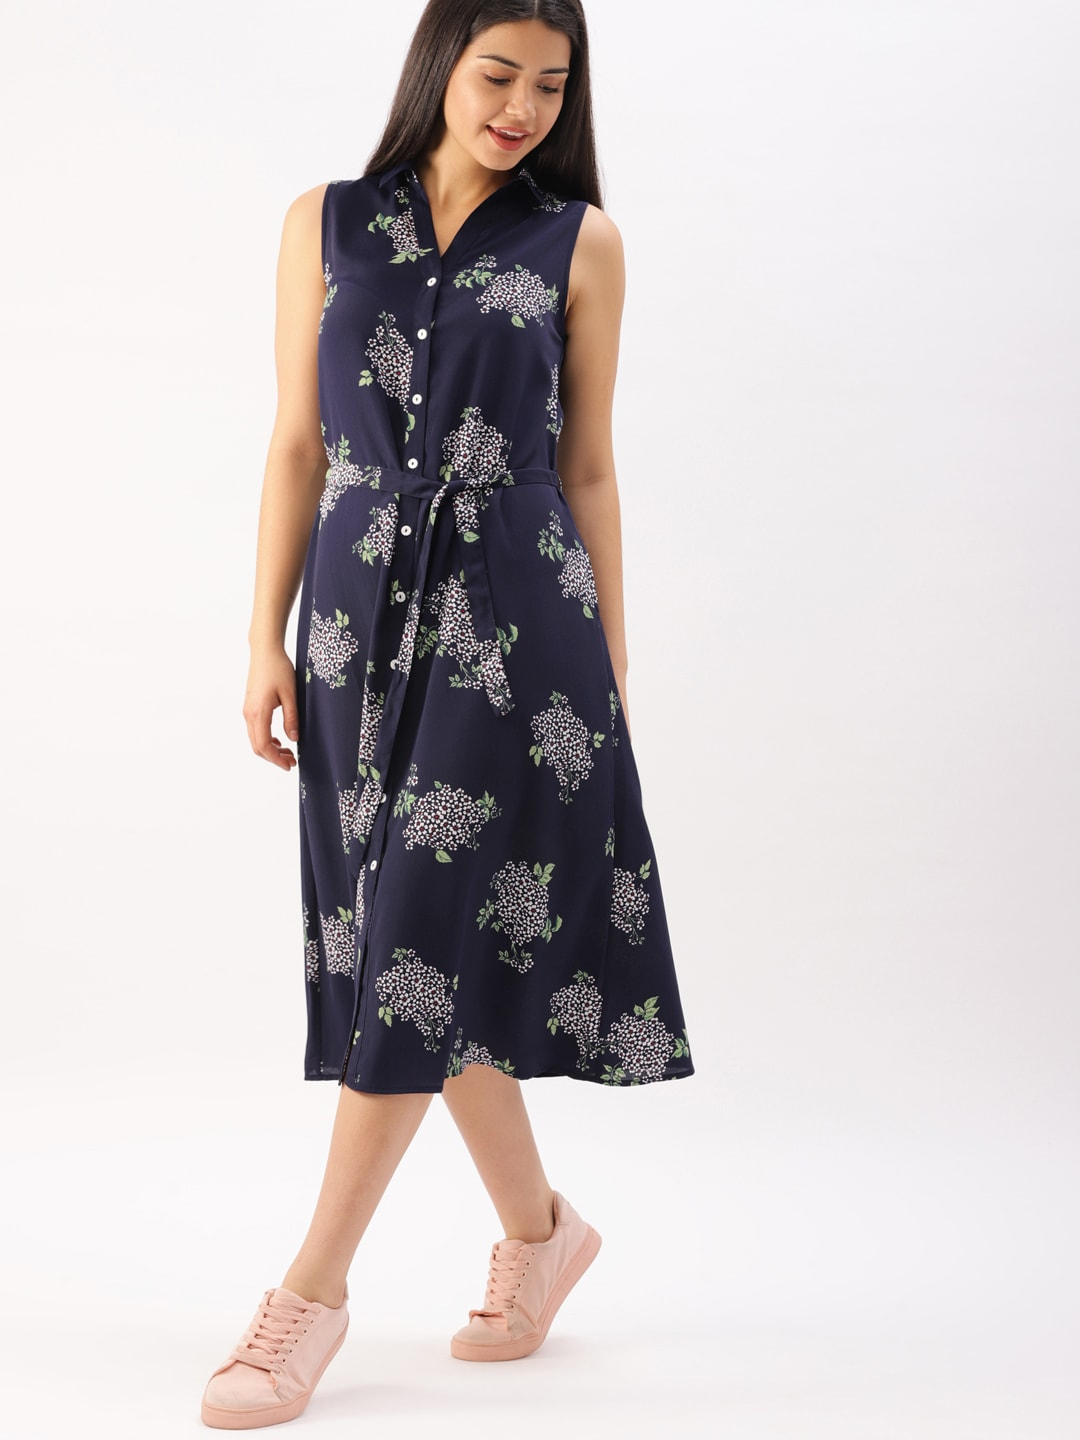 e4e465db68a Dresses And Jumpsuits - Buy Dresses And Jumpsuits online in India